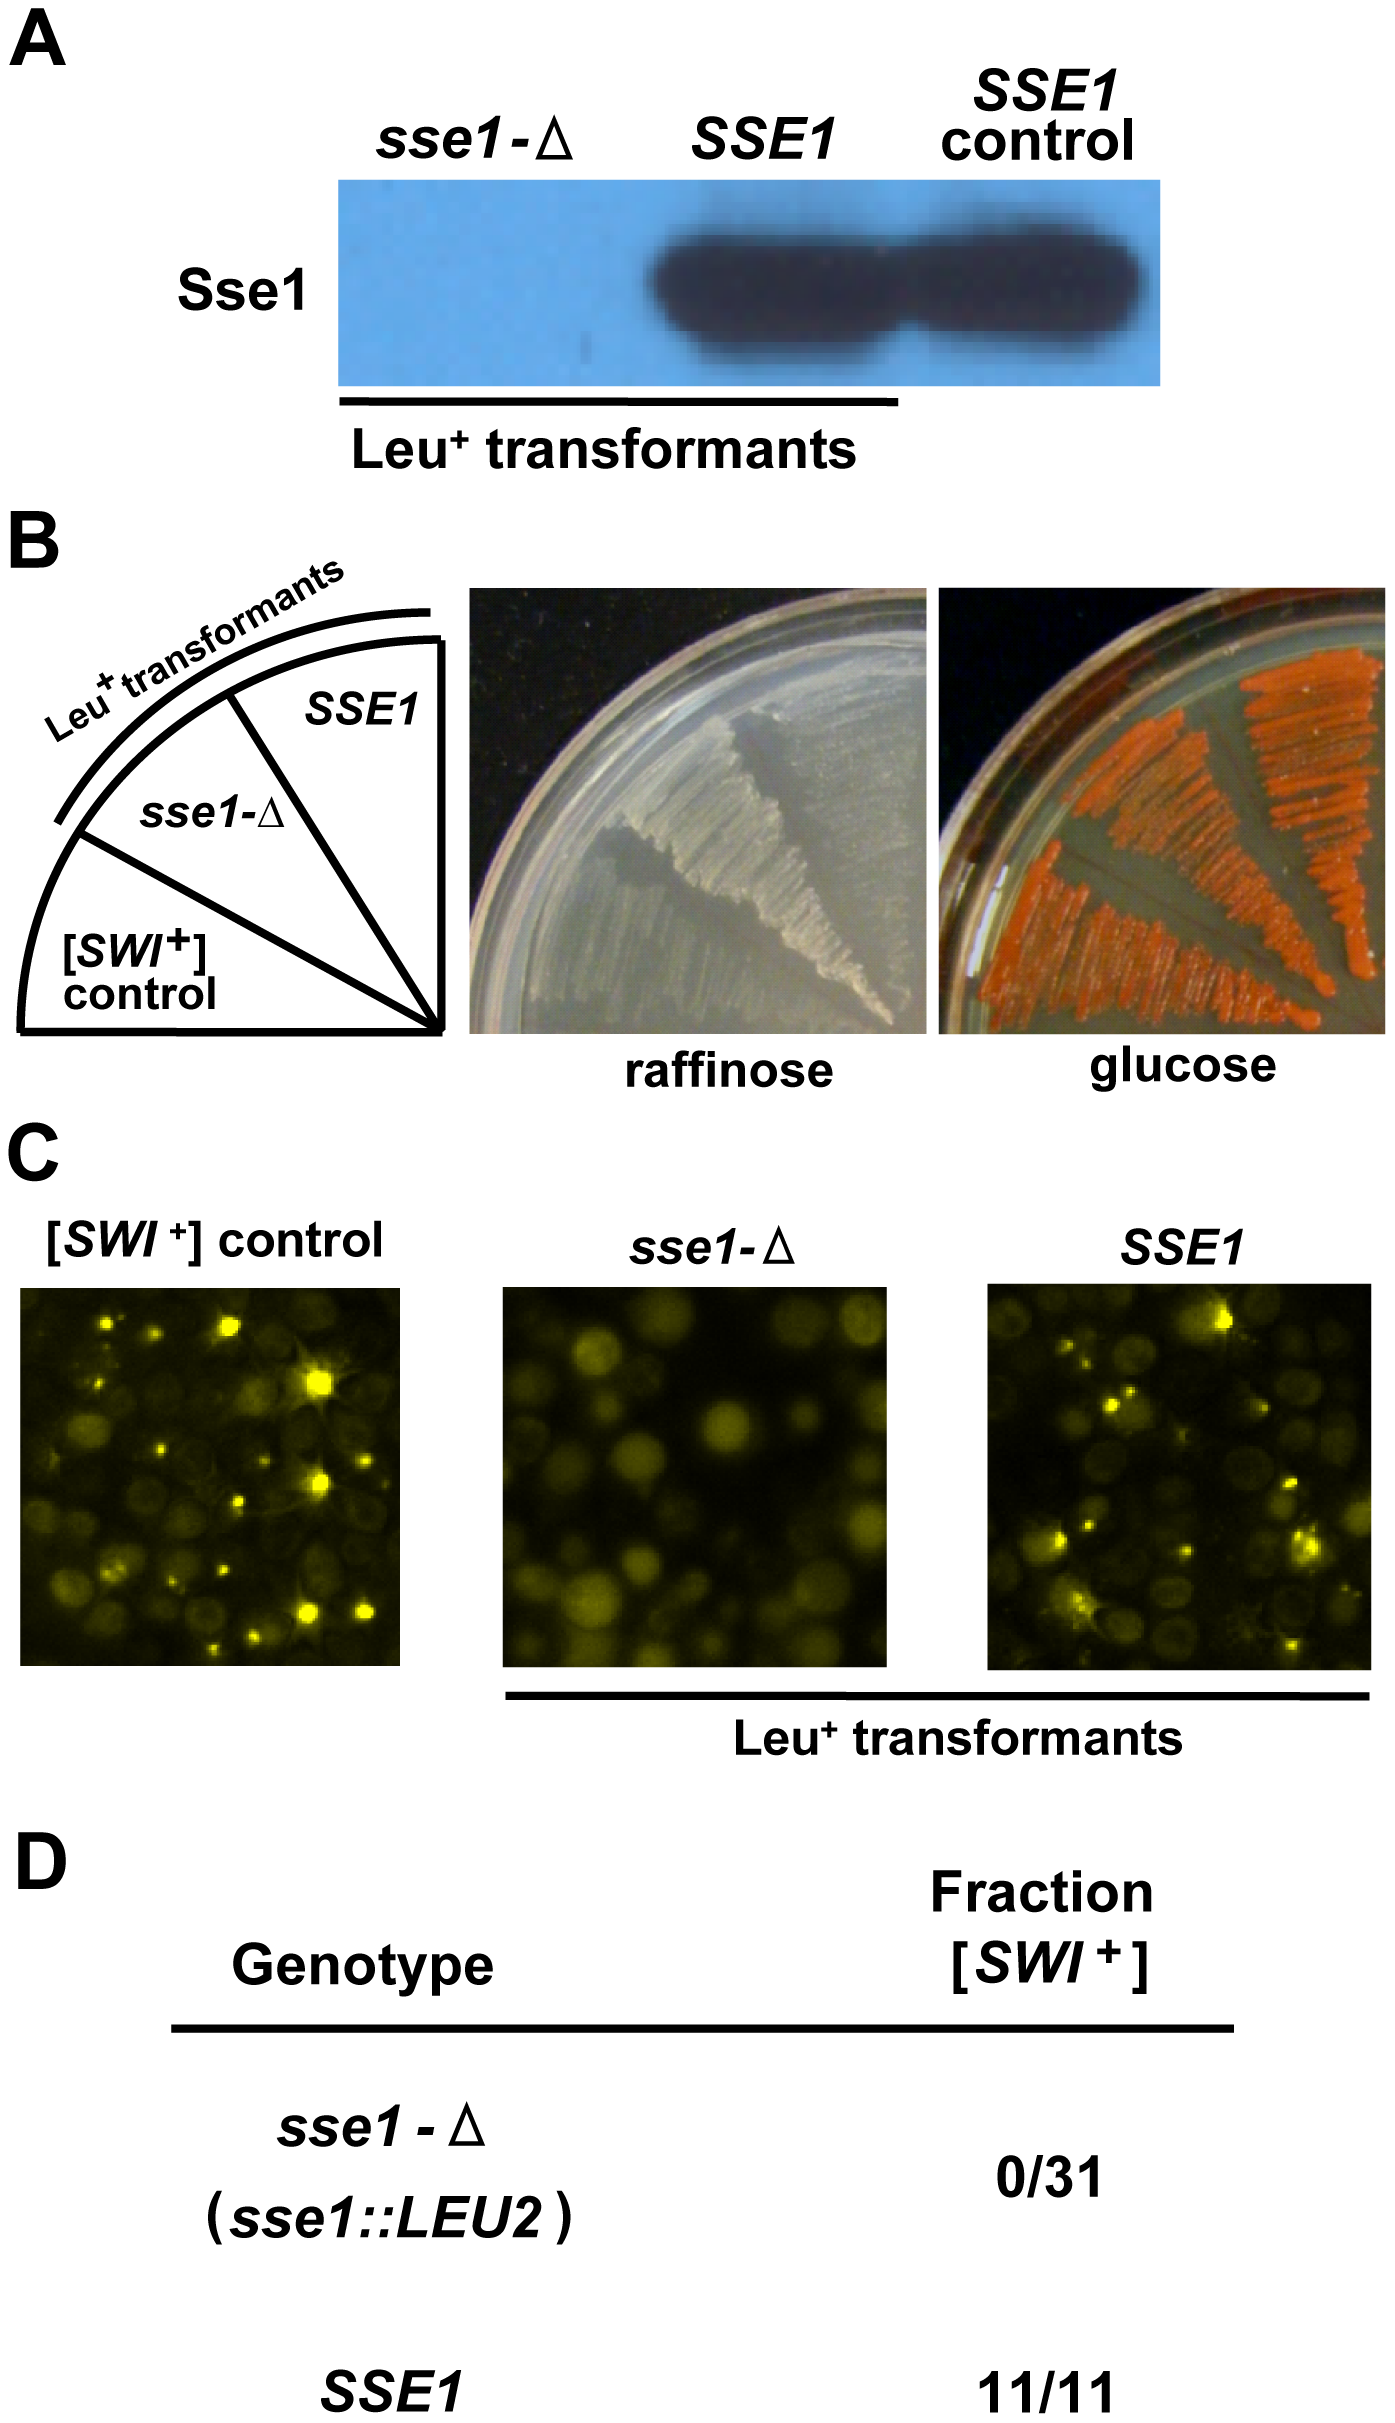 [<i>SWI</i><sup>+</sup>] is cured upon deletion of <i>SSE1</i>.